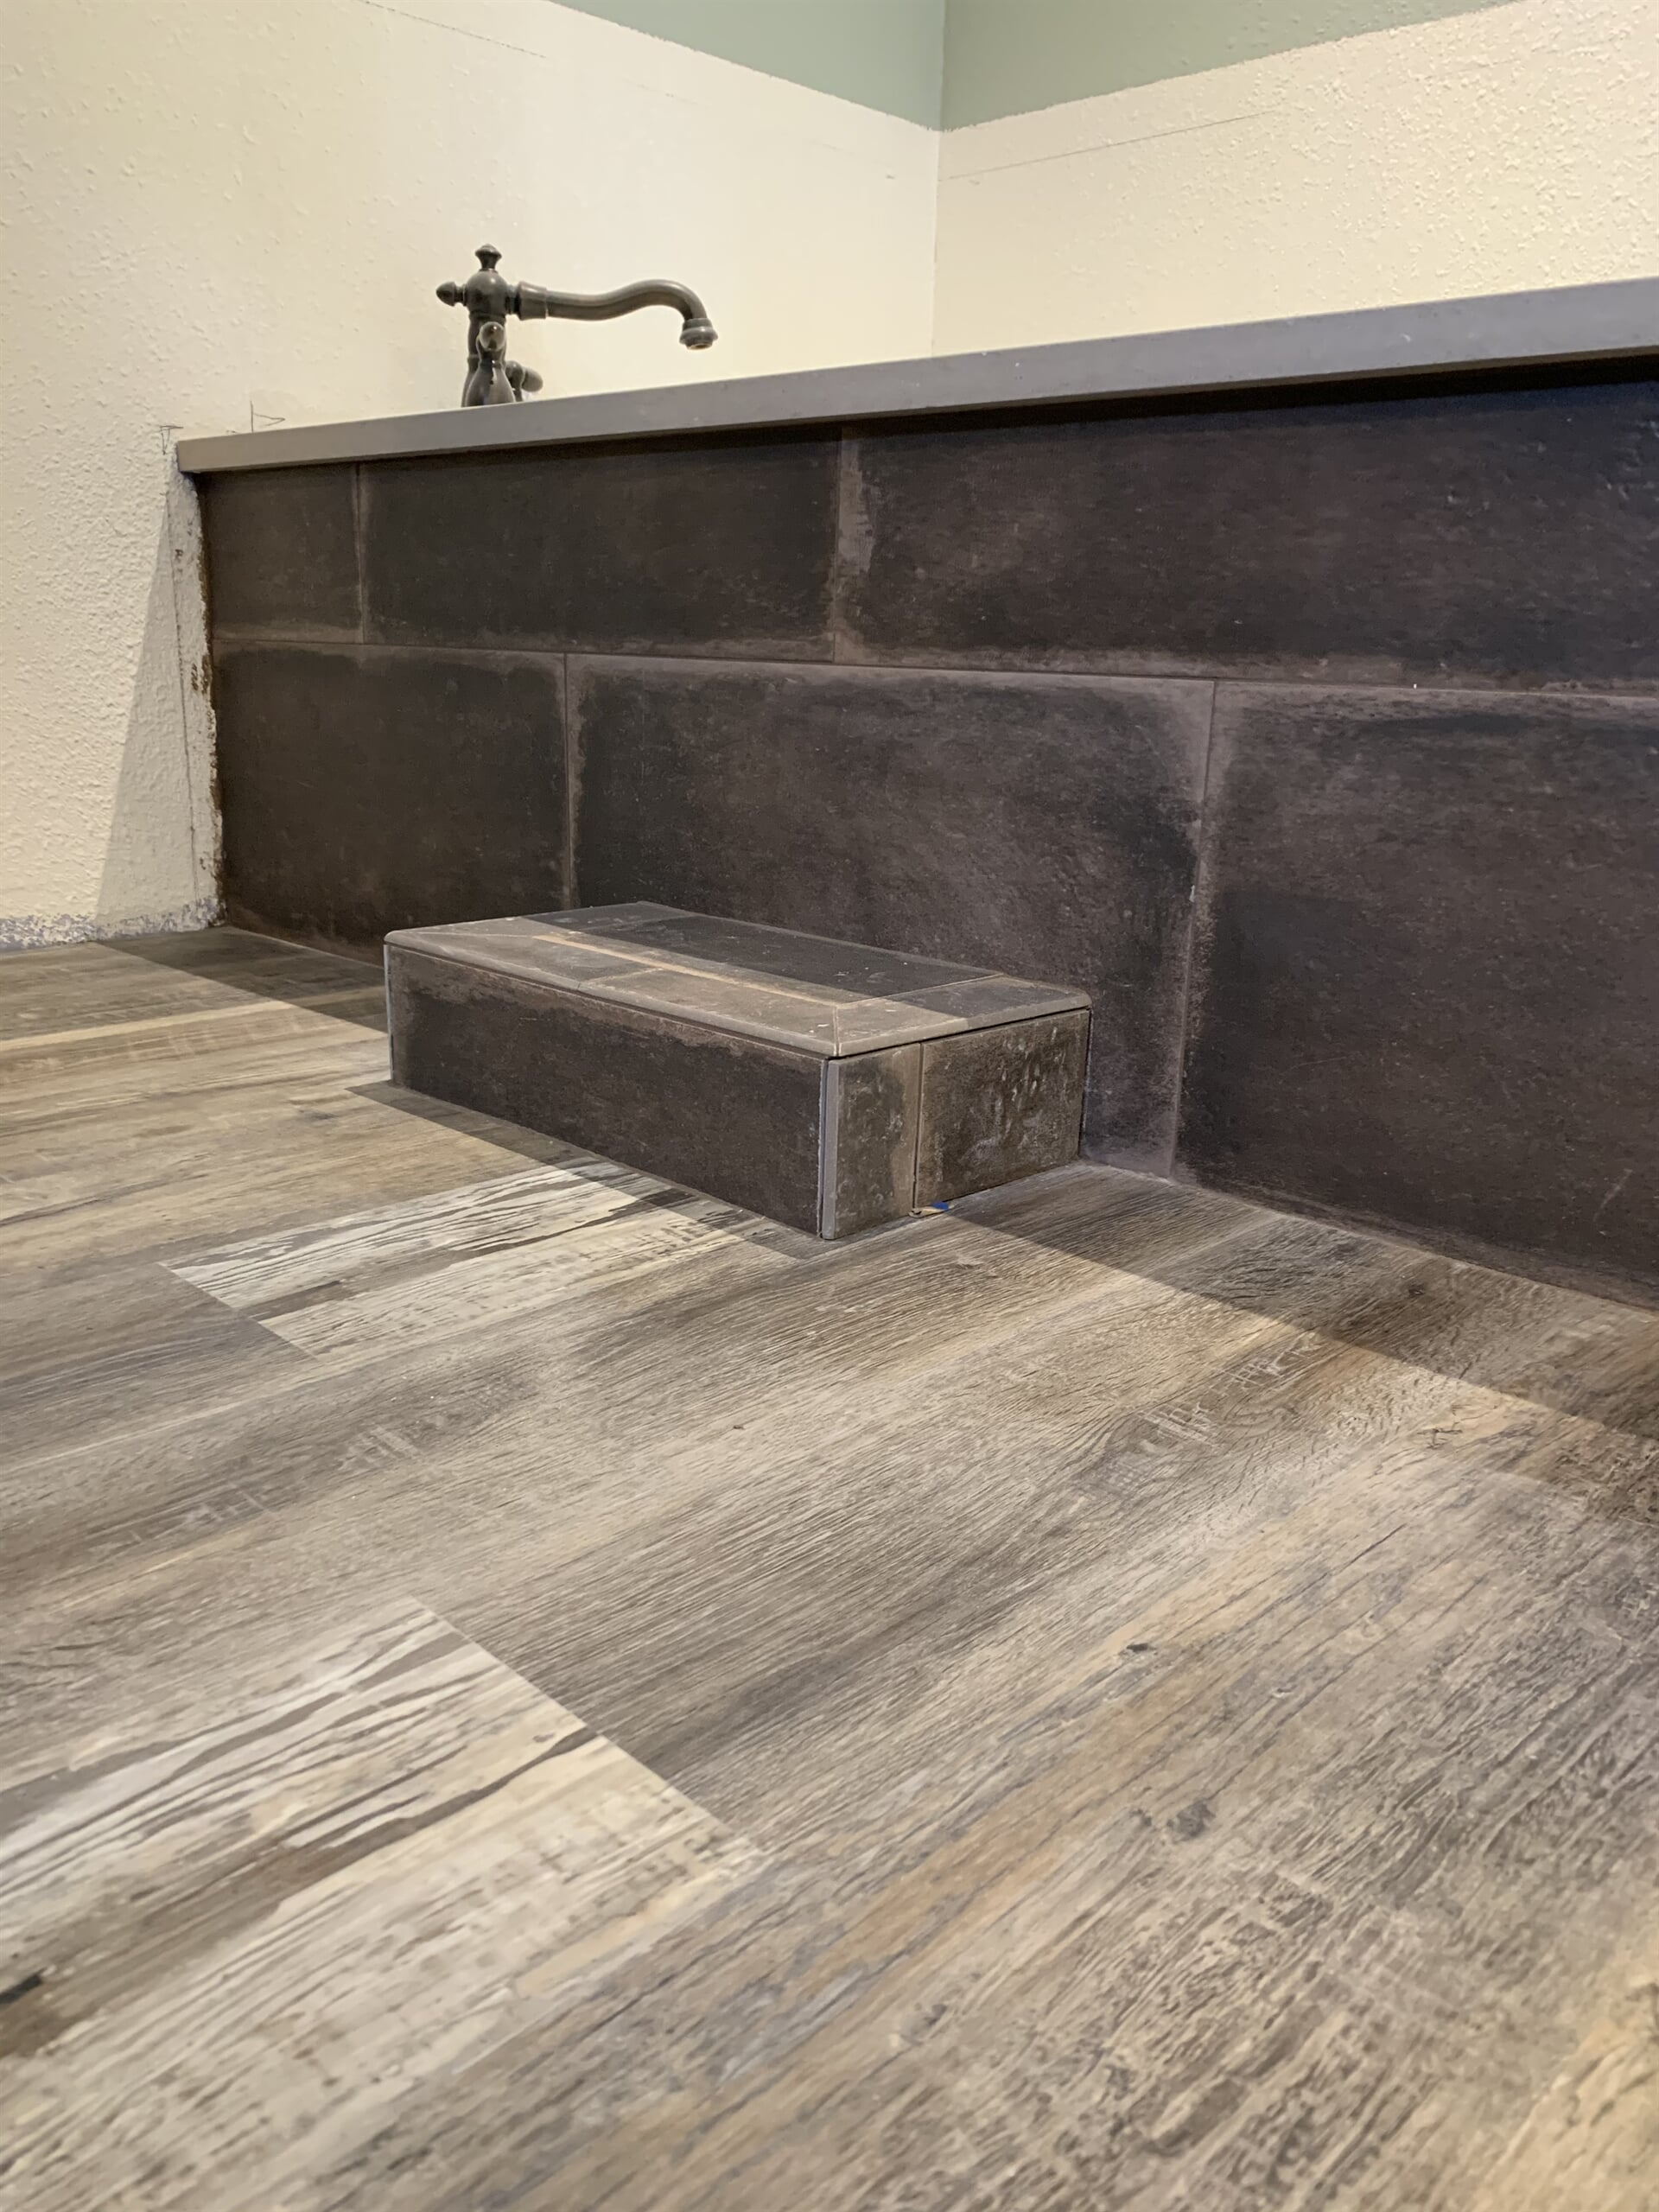 Rustic tub surround in Port Neches, TX from Odile's Fine Flooring & Design